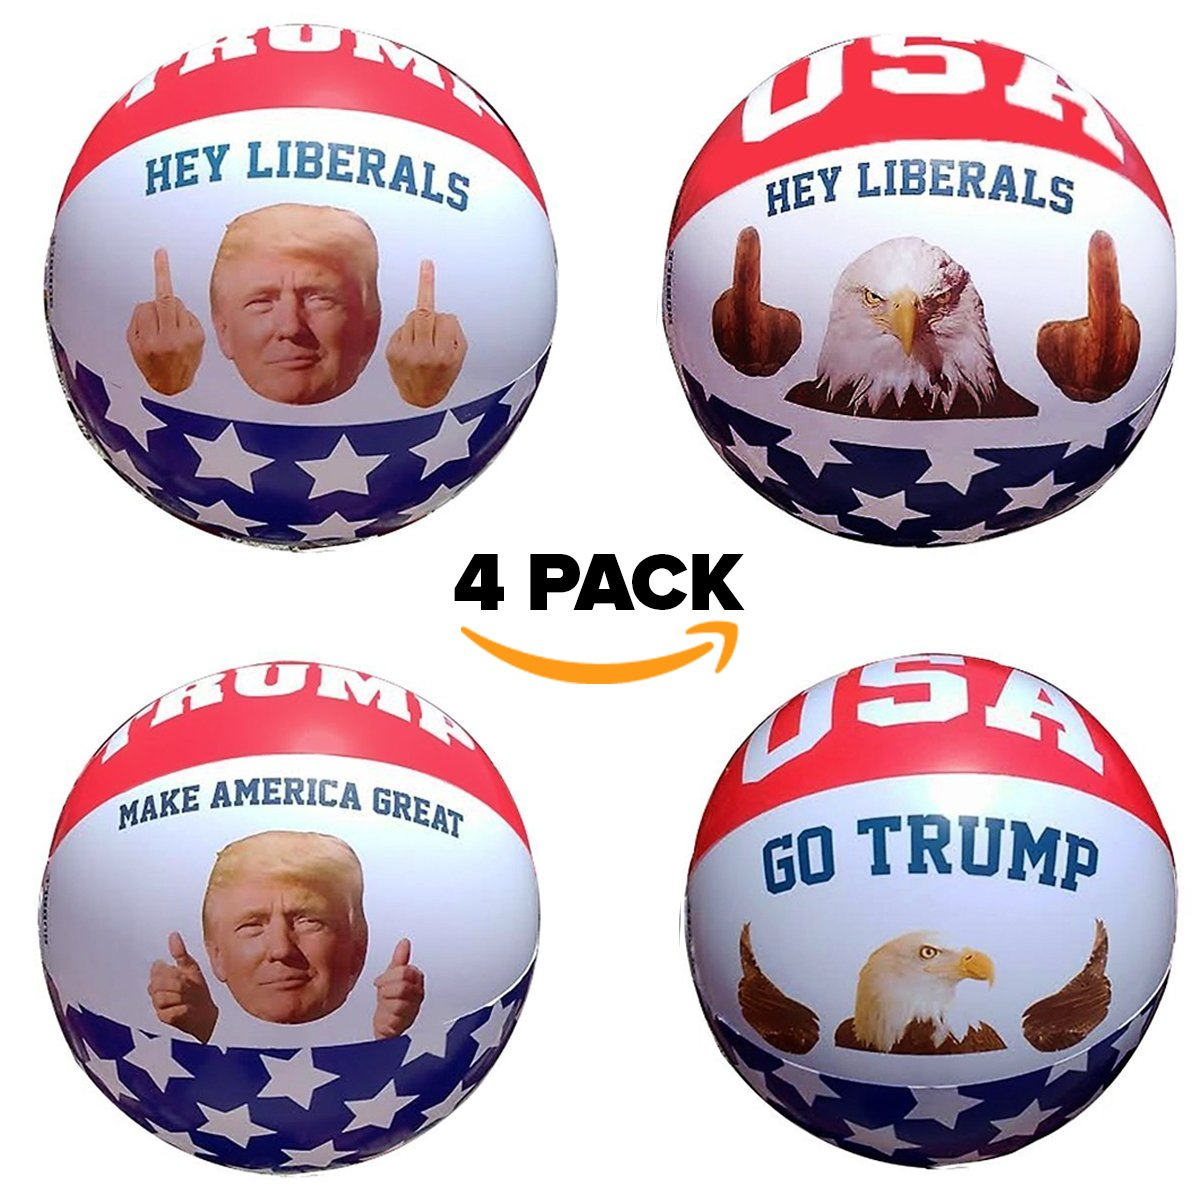 Inflatable Beach Ball Pool Toy: 4 Pack President Donald Trump & American Eagle Beach Ball Set|Easy To Inflate USA Patriotic Thumbs Up & Middle Finger Ball| Amazing Funny Pool Toys For Adults Idea by BobbleFingers